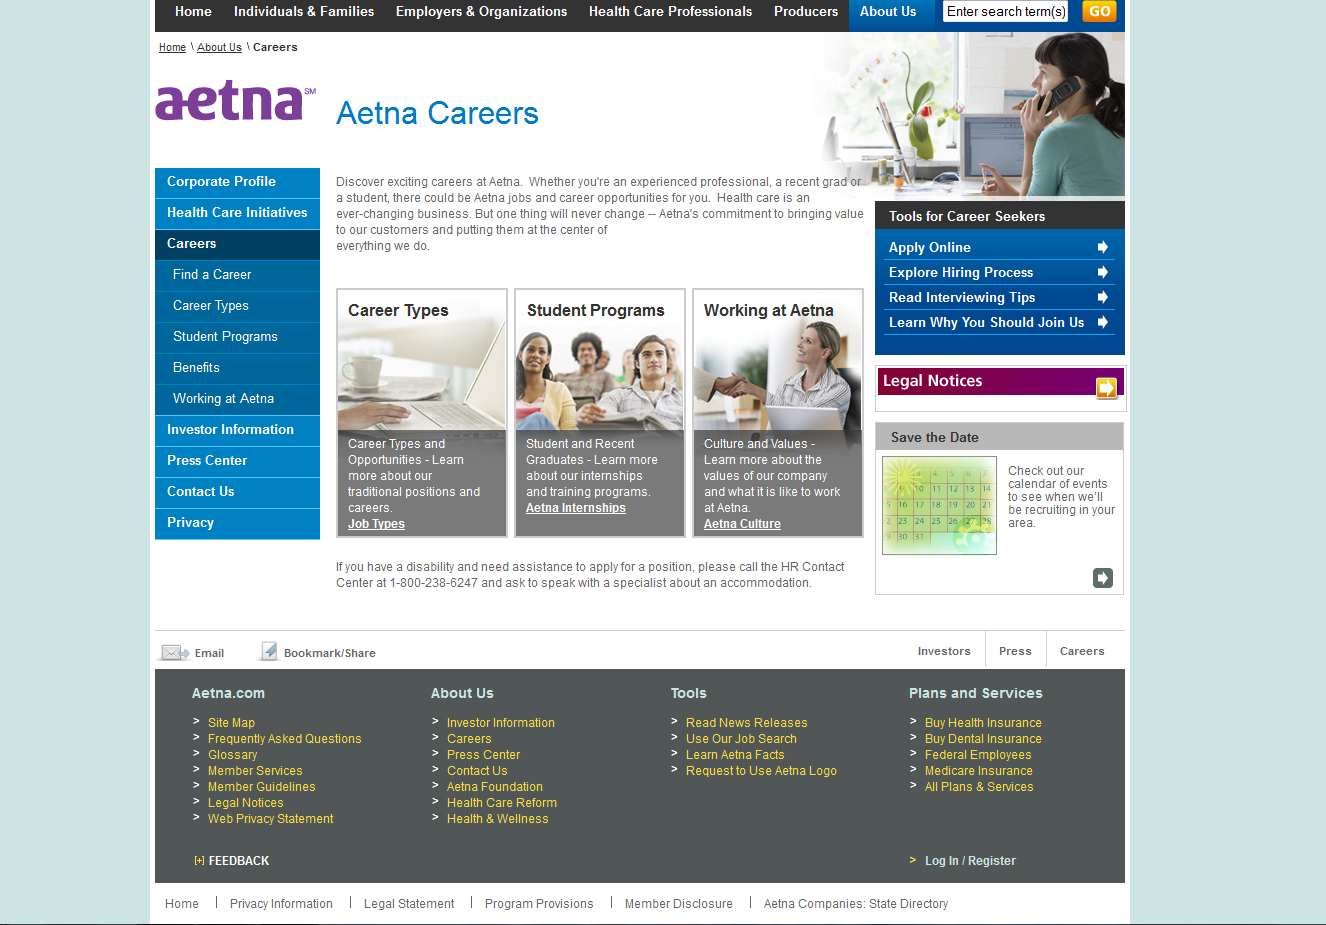 Aetna Work at Home Jobs in Customer Service (With images